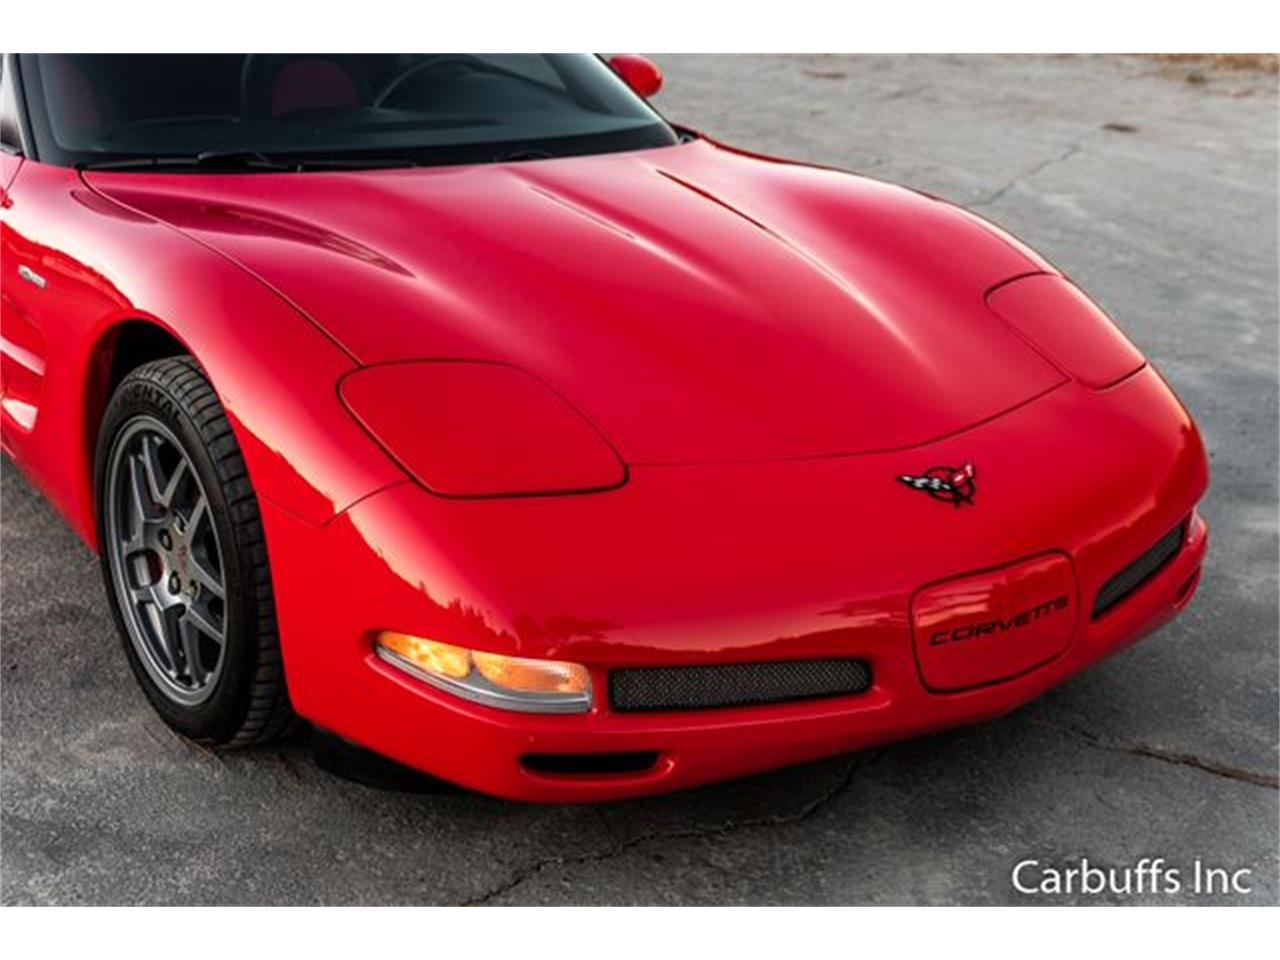 2001 Chevrolet Corvette for sale in Concord, CA – photo 24